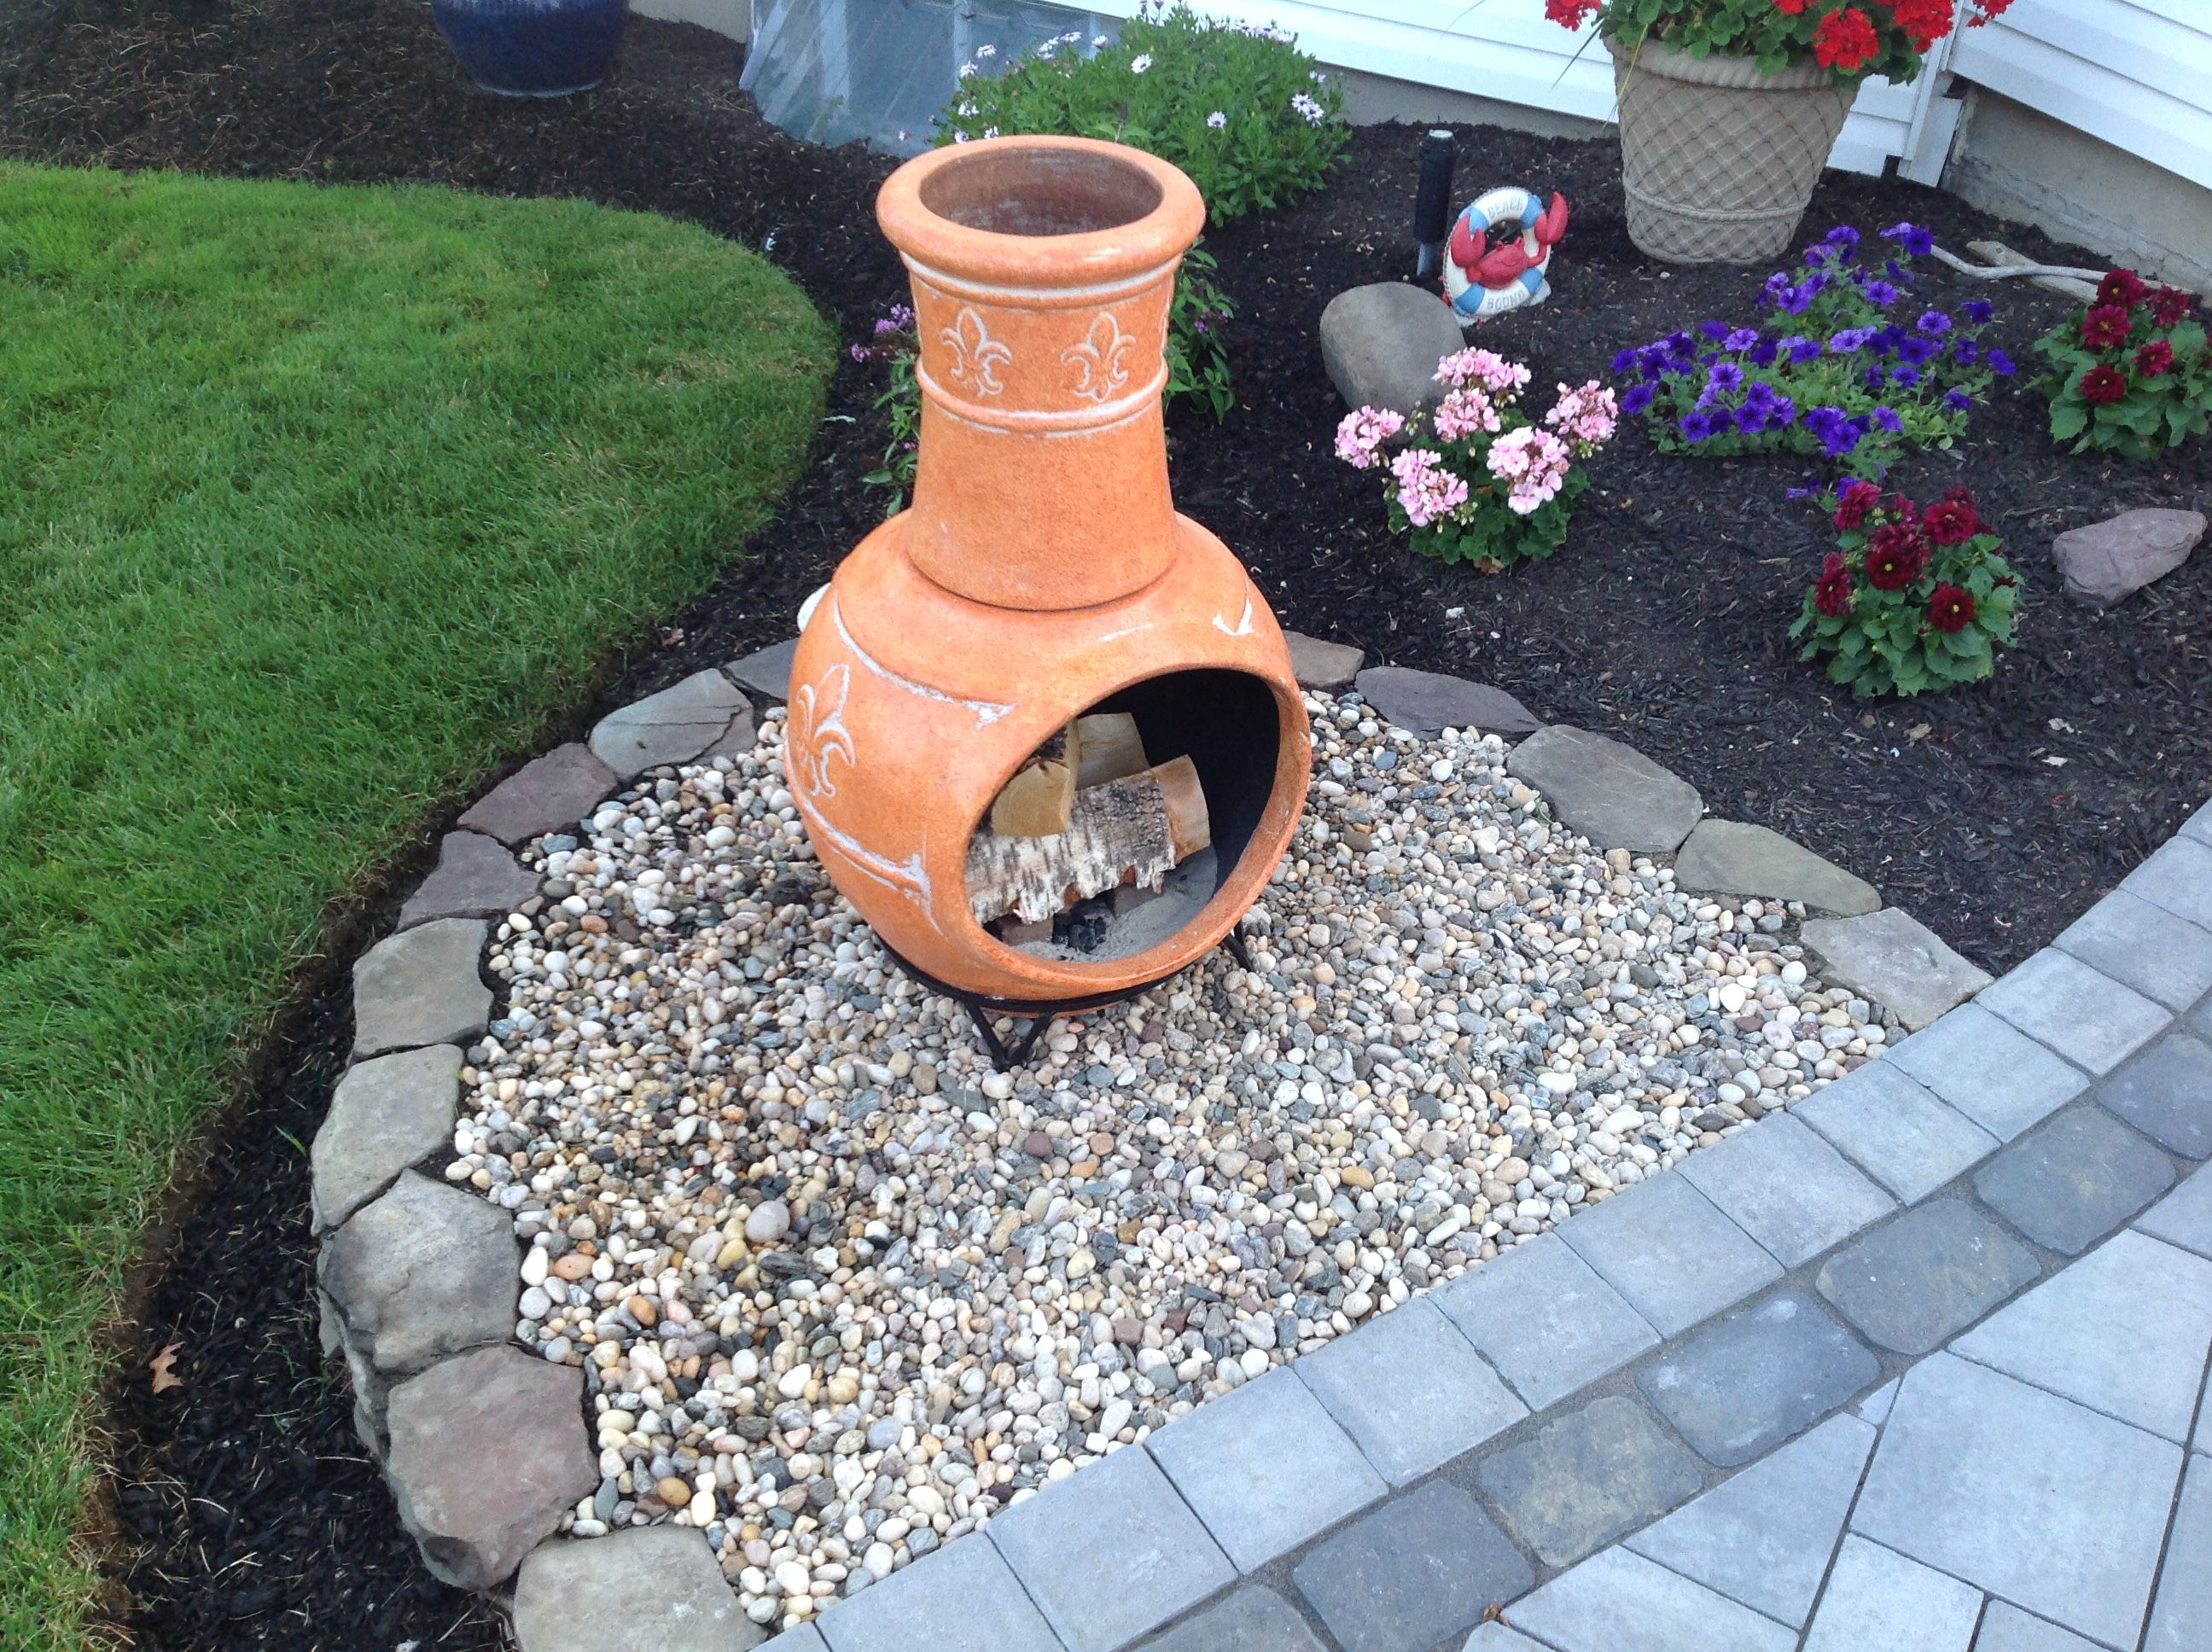 Diy chiminea fire pit patio ideas pinterest for Outdoor fire pit and patio ideas